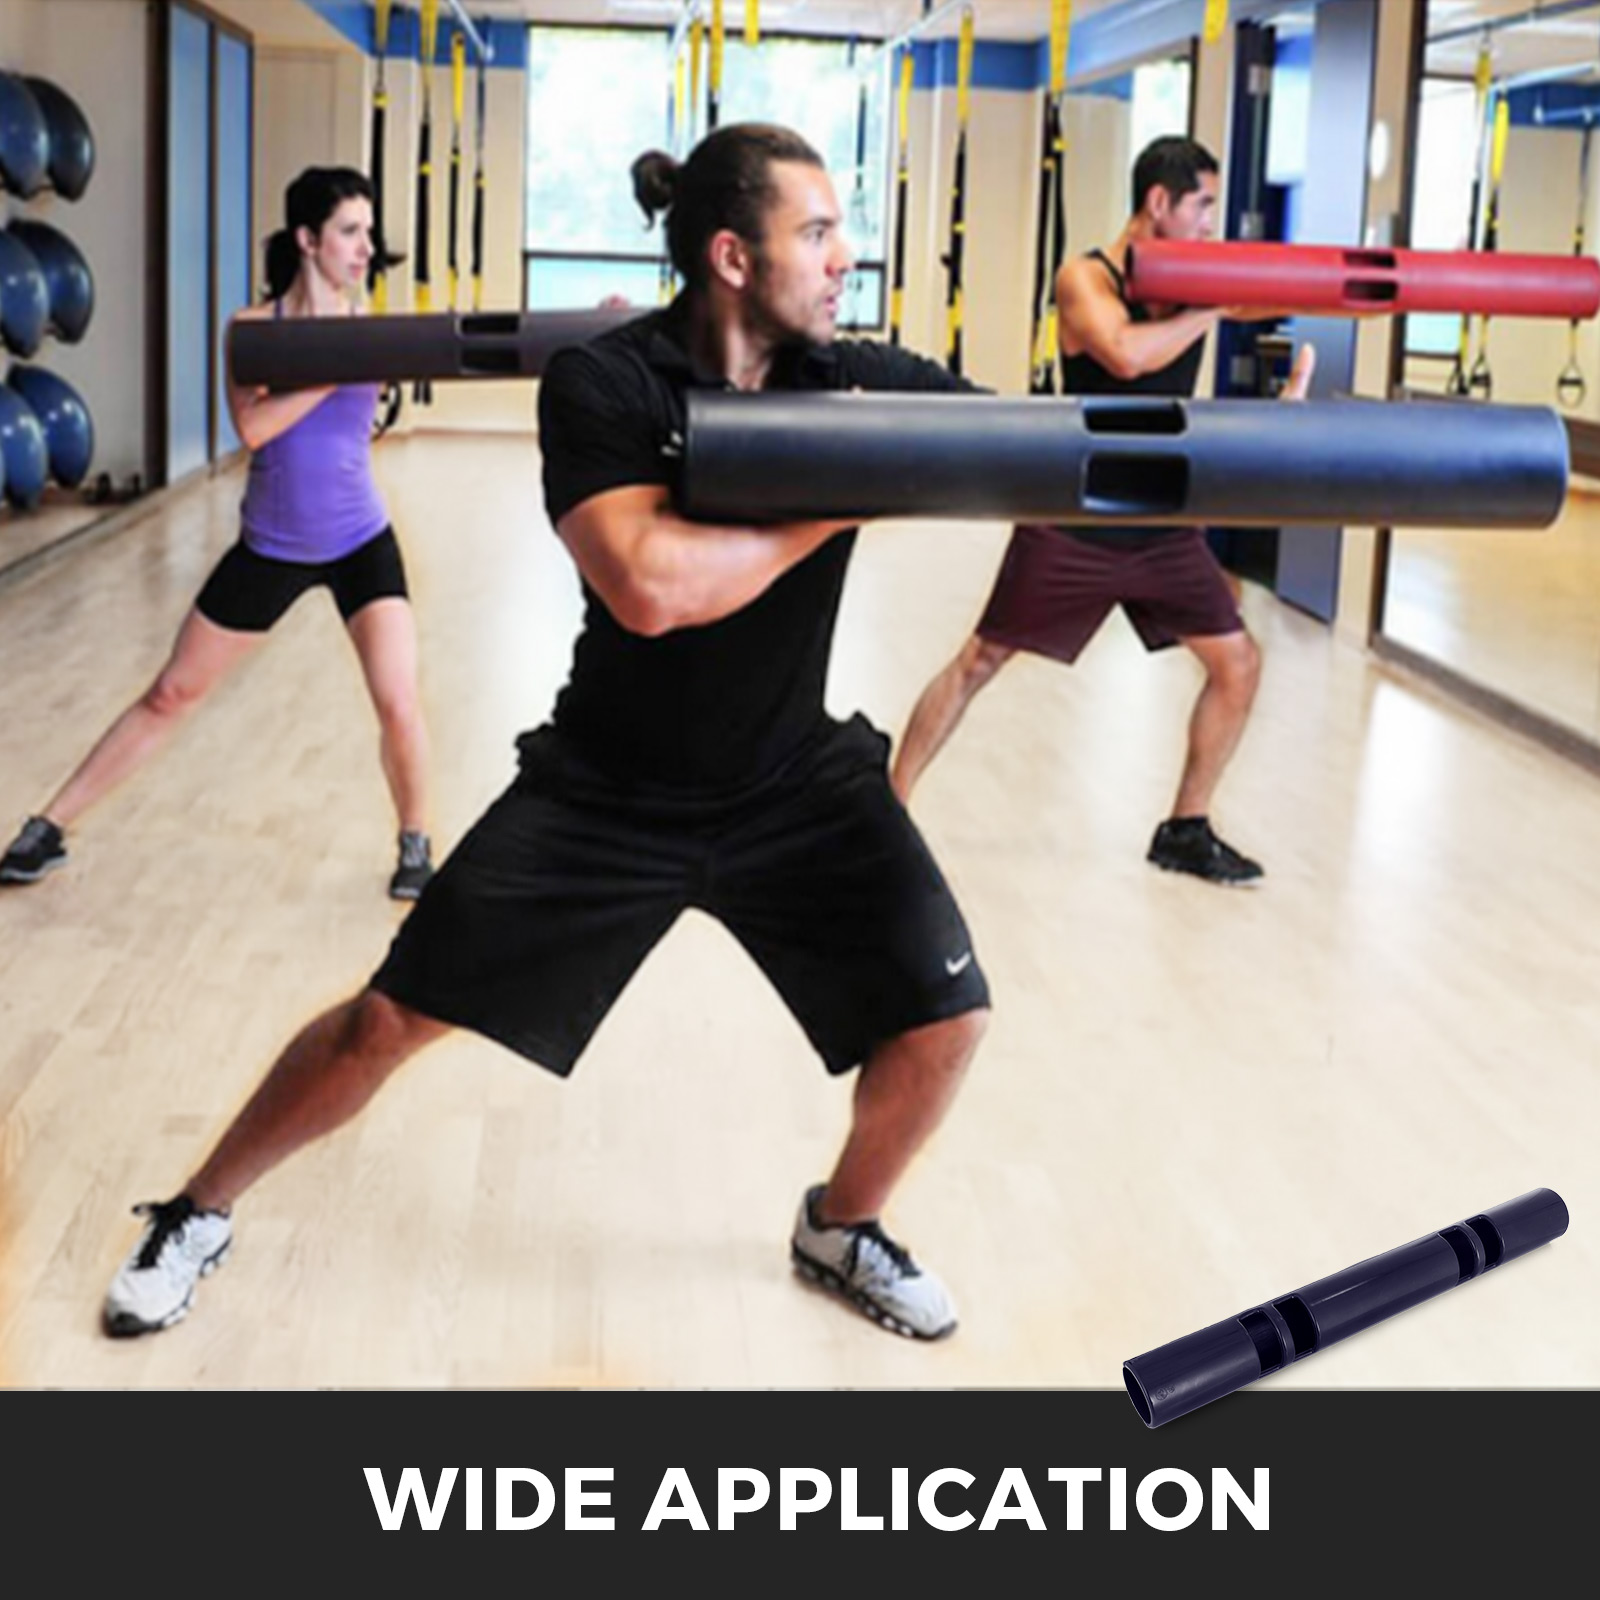 Vipr-Fitpro-Fitness-Tube-Loaded-Movement-Training-weightlifting-4-6-8-10-12-Kg thumbnail 163